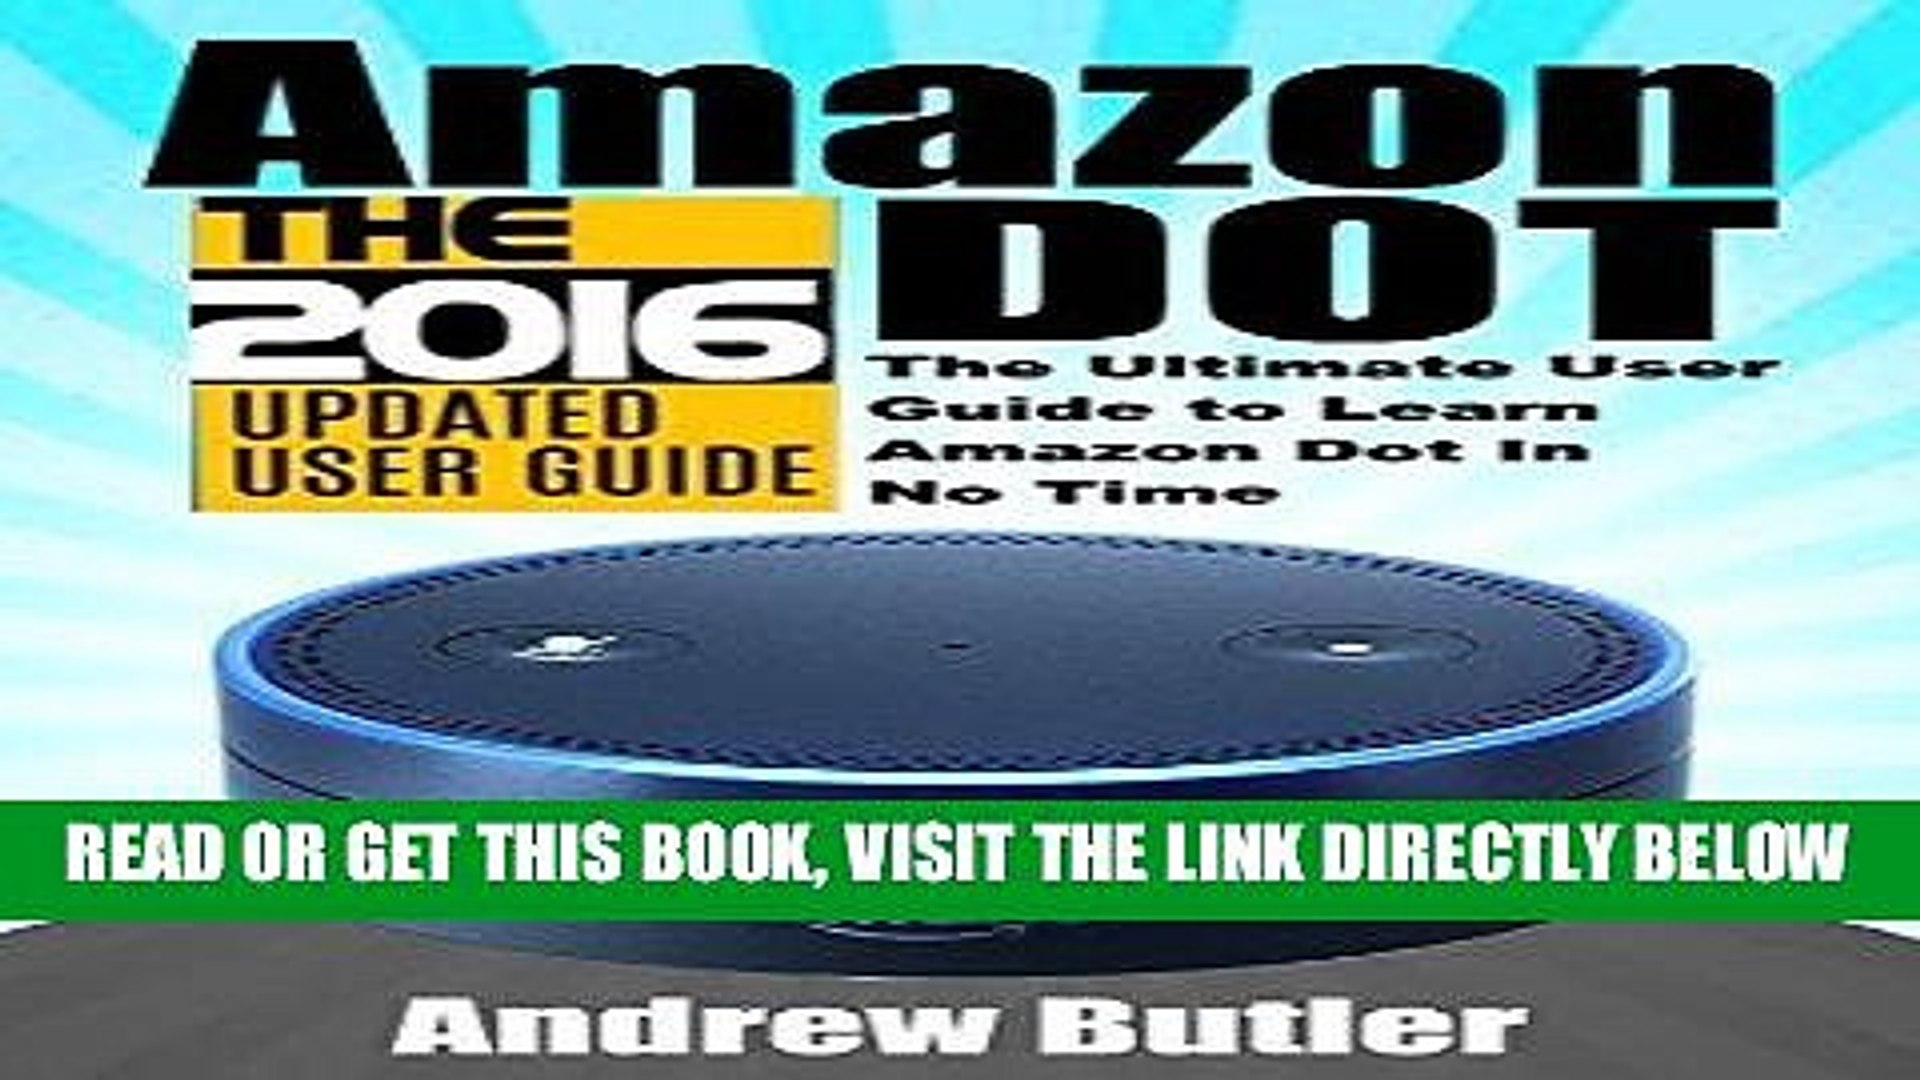 EBOOK] DOWNLOAD Amazon Echo: Dot: The Ultimate User Guide to Learn Amazon Dot In No Time (Amazon